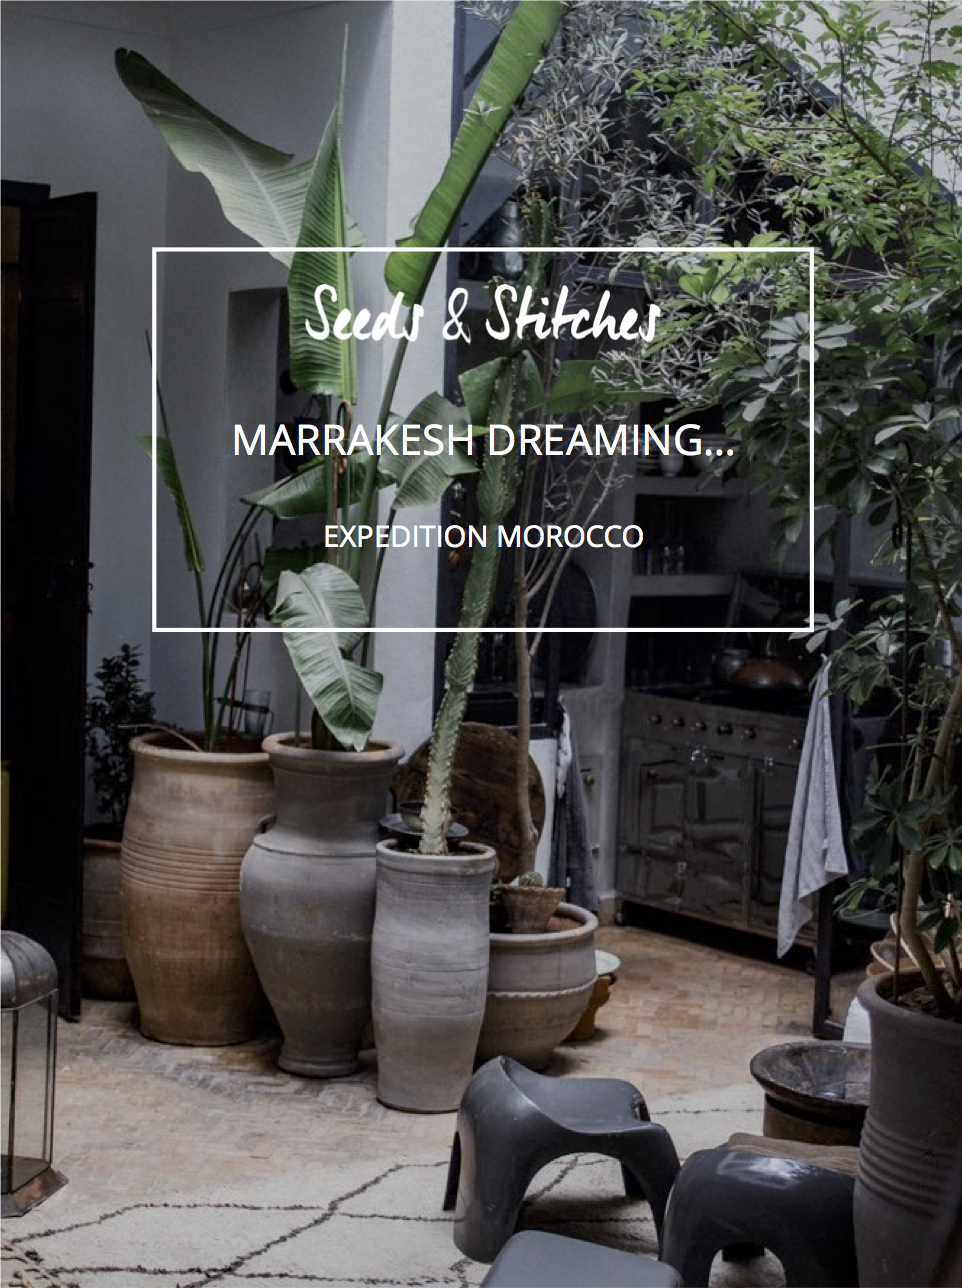 Marrakesh | Seeds and Stitches blog